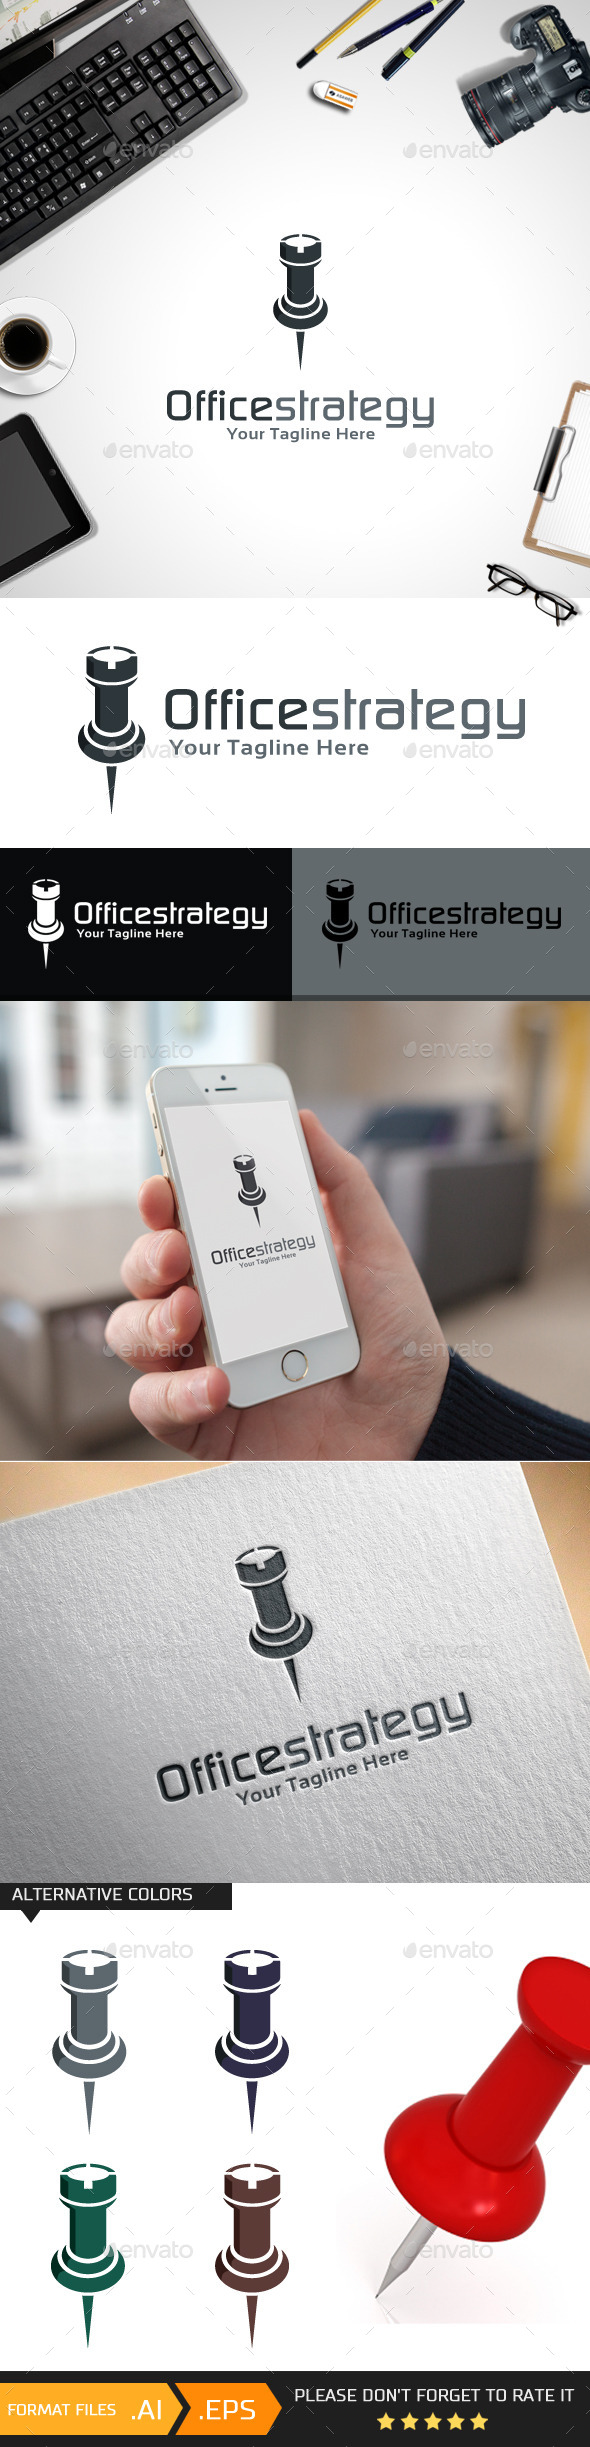 GraphicRiver Officestrategy Logo Template 10431123